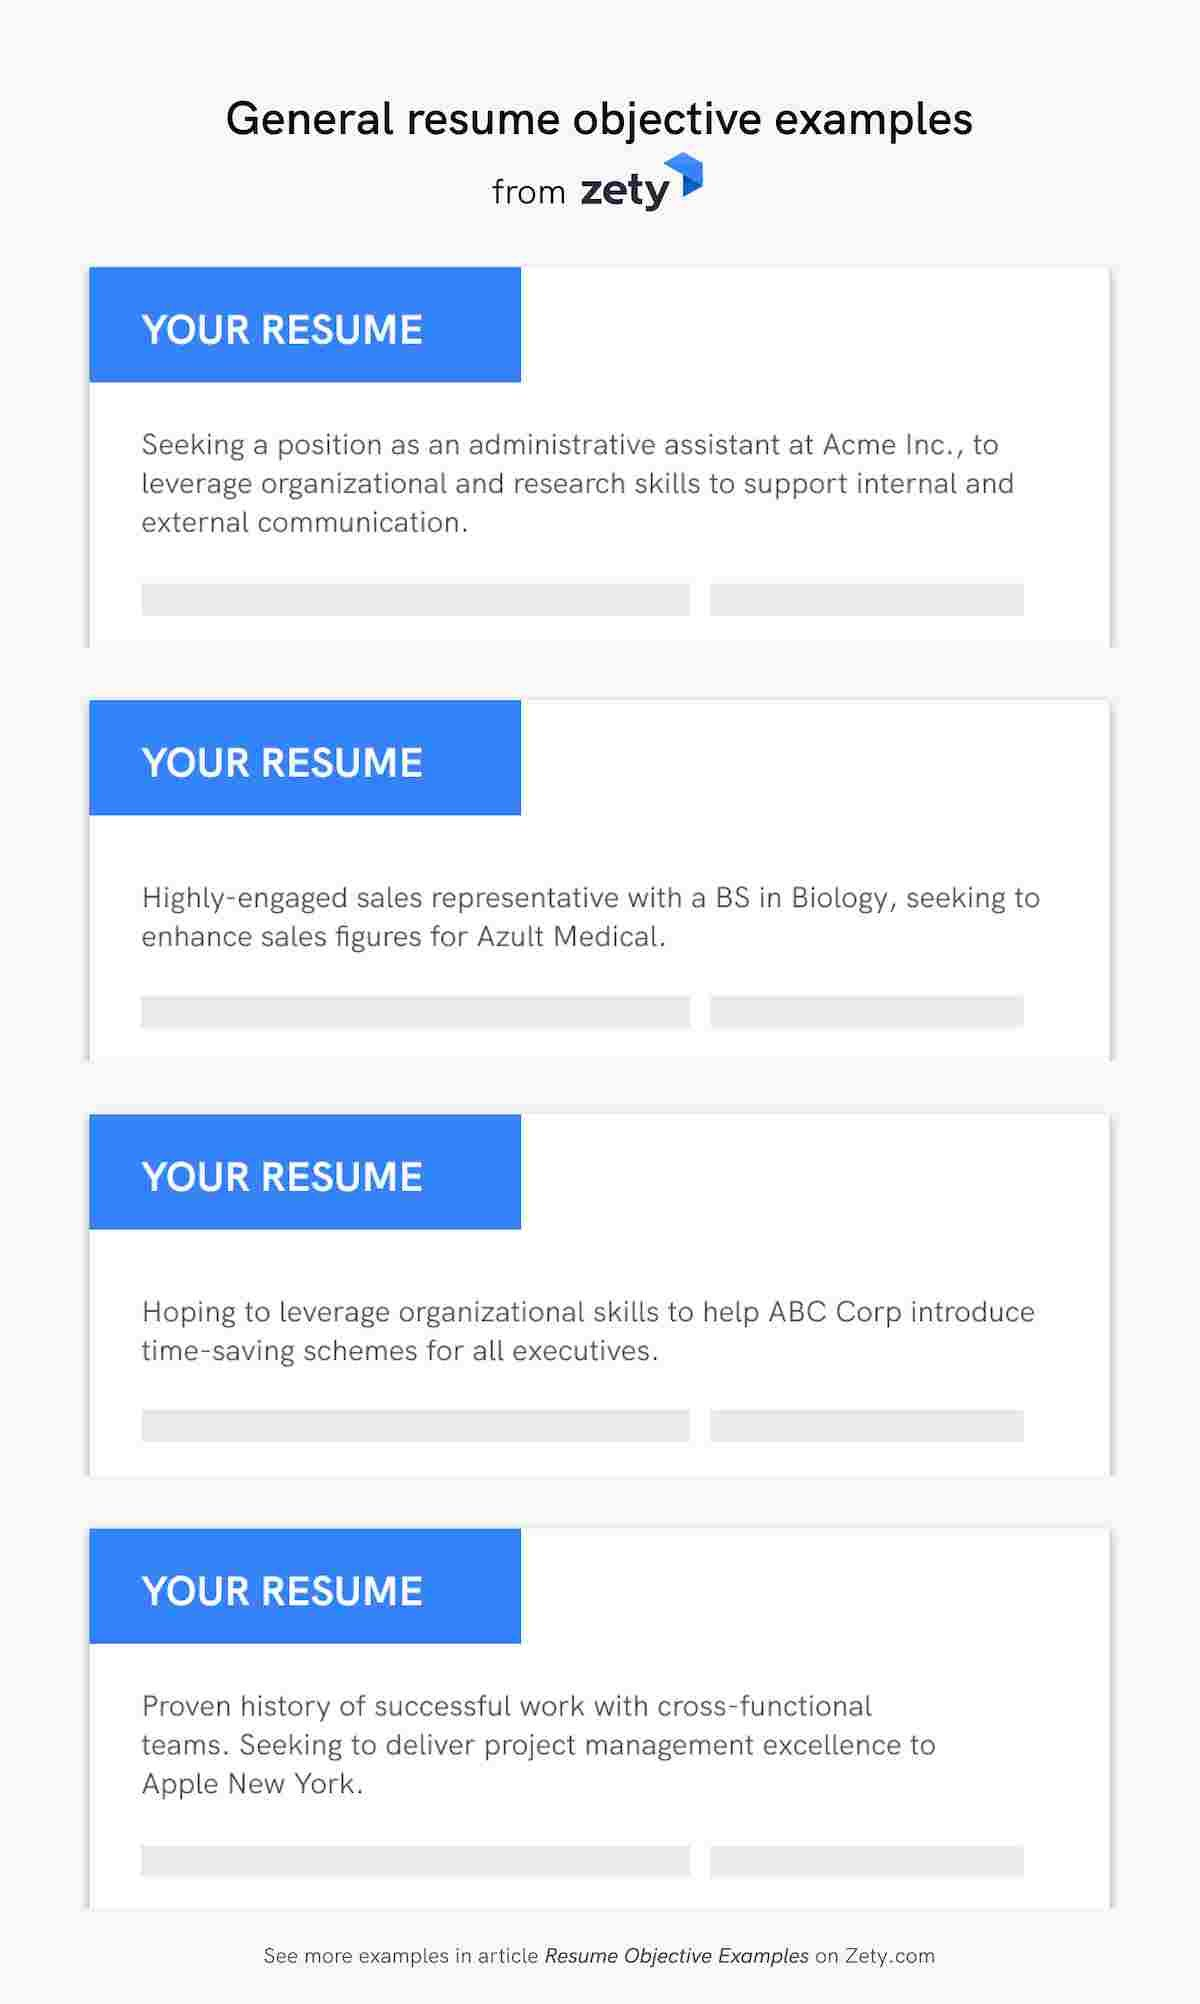 resume objective examples career objectives for all jobs college general high school Resume College Resume Objective